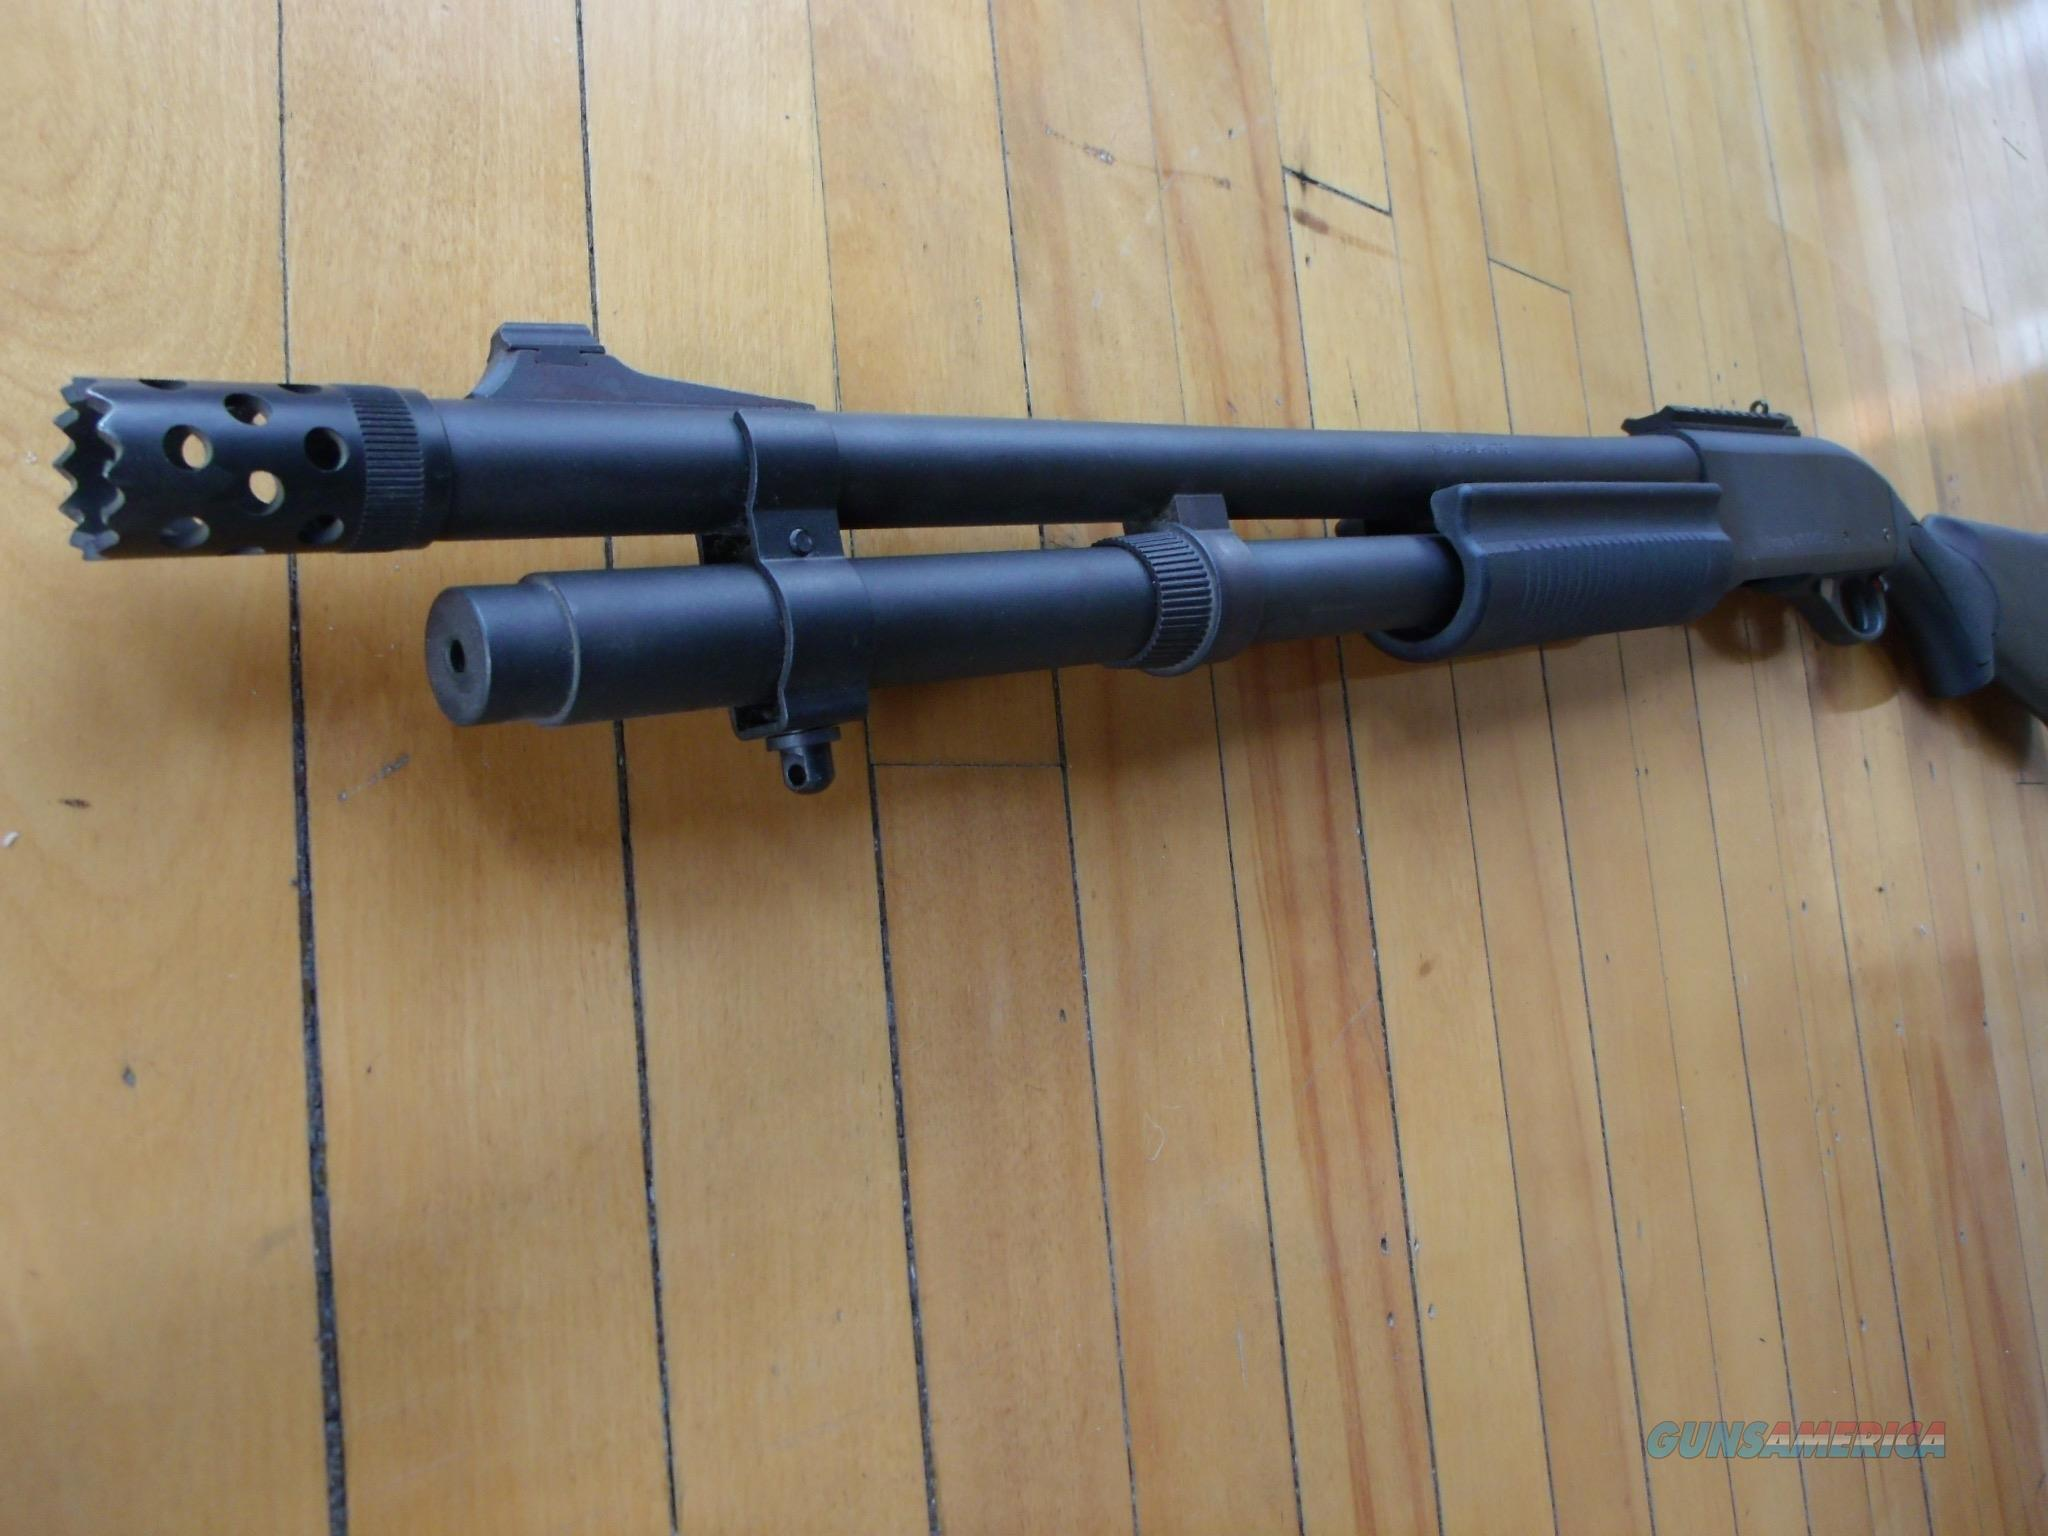 Remington 870 tactical with fancy device at end of barrel  Guns > Shotguns > Remington Shotguns  > Pump > Tactical